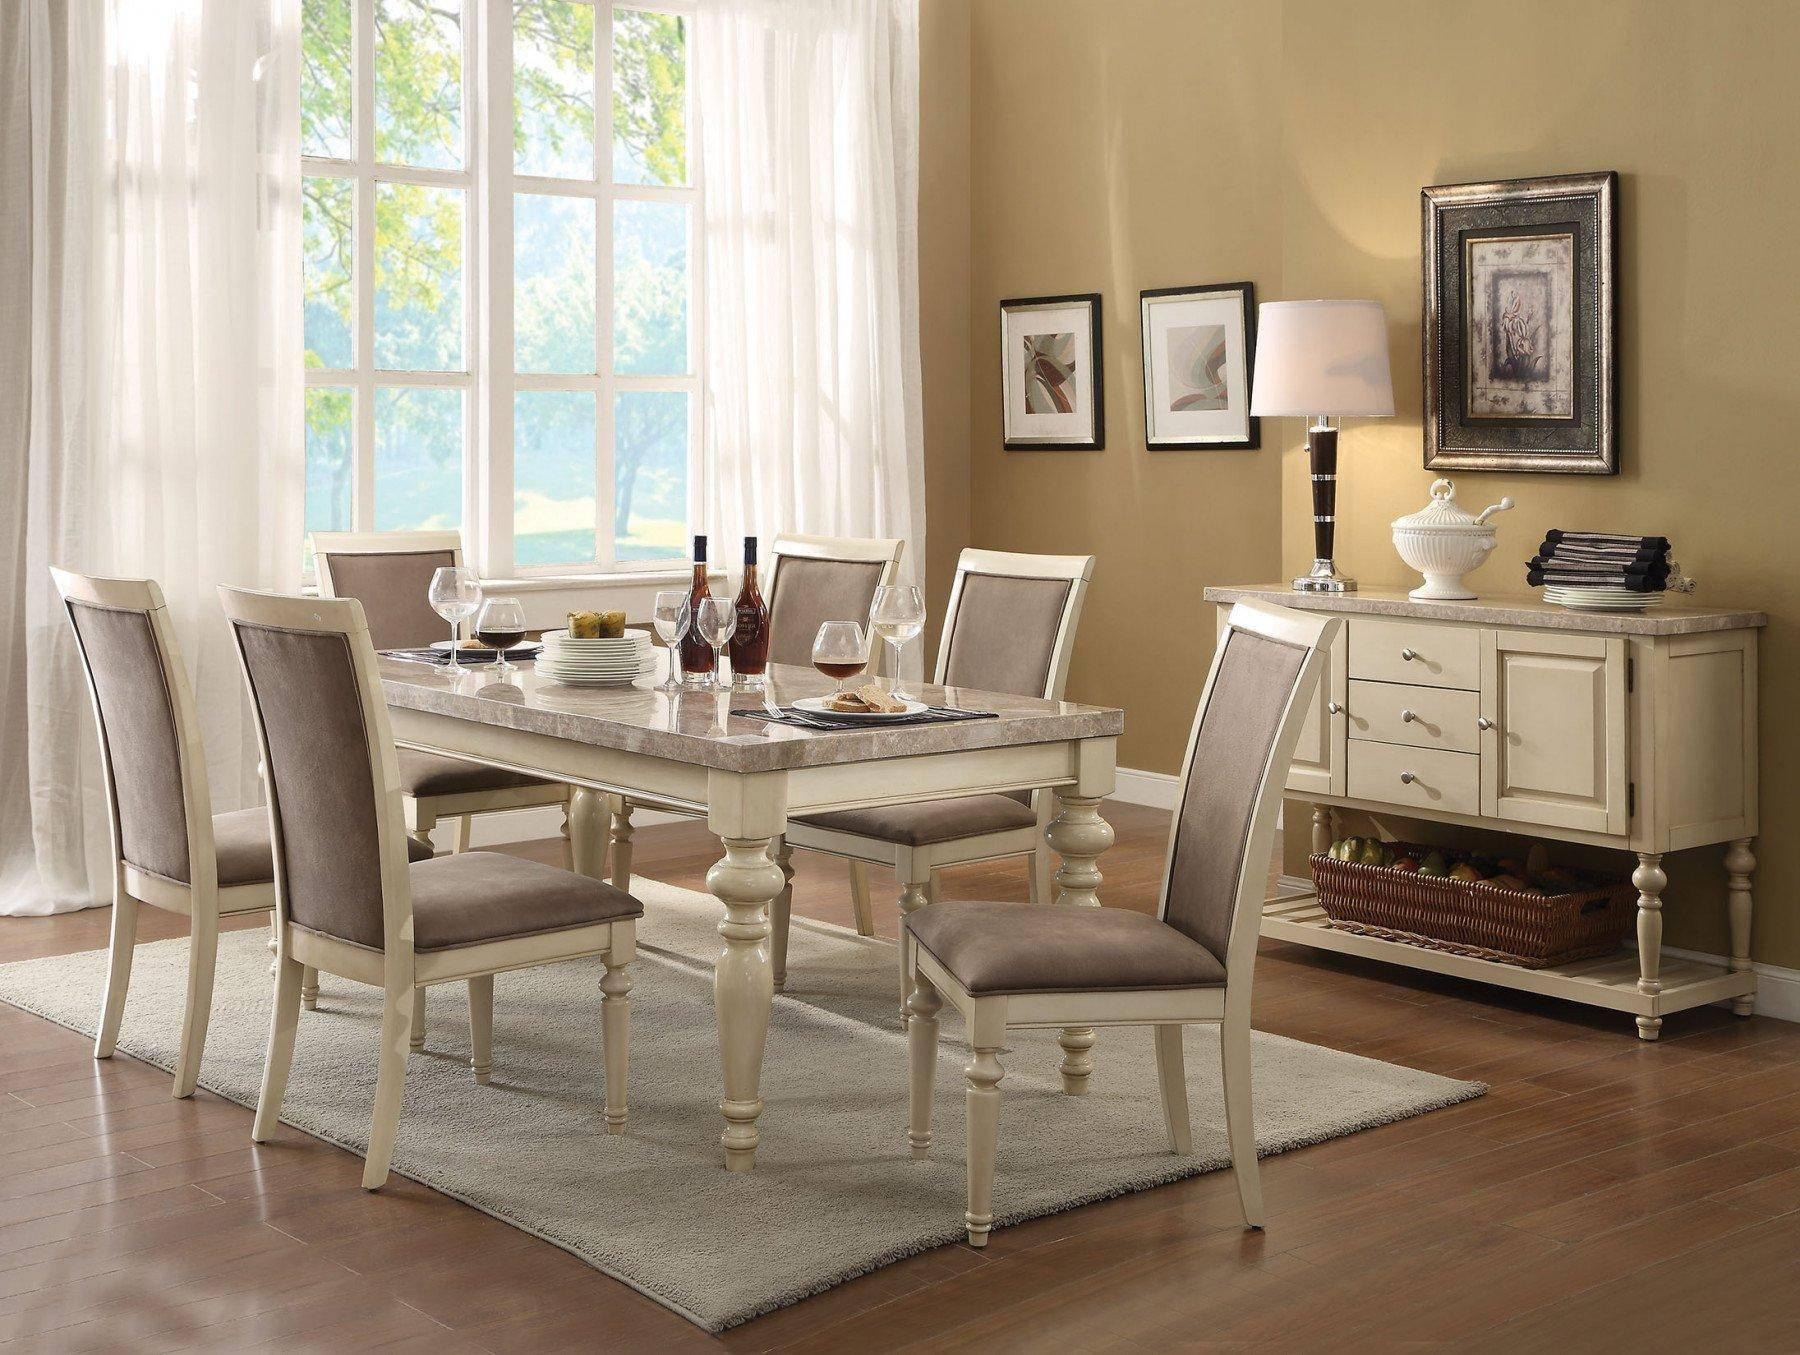 Acme 71705 Ryder Antique White Marble Top Dining Table Set